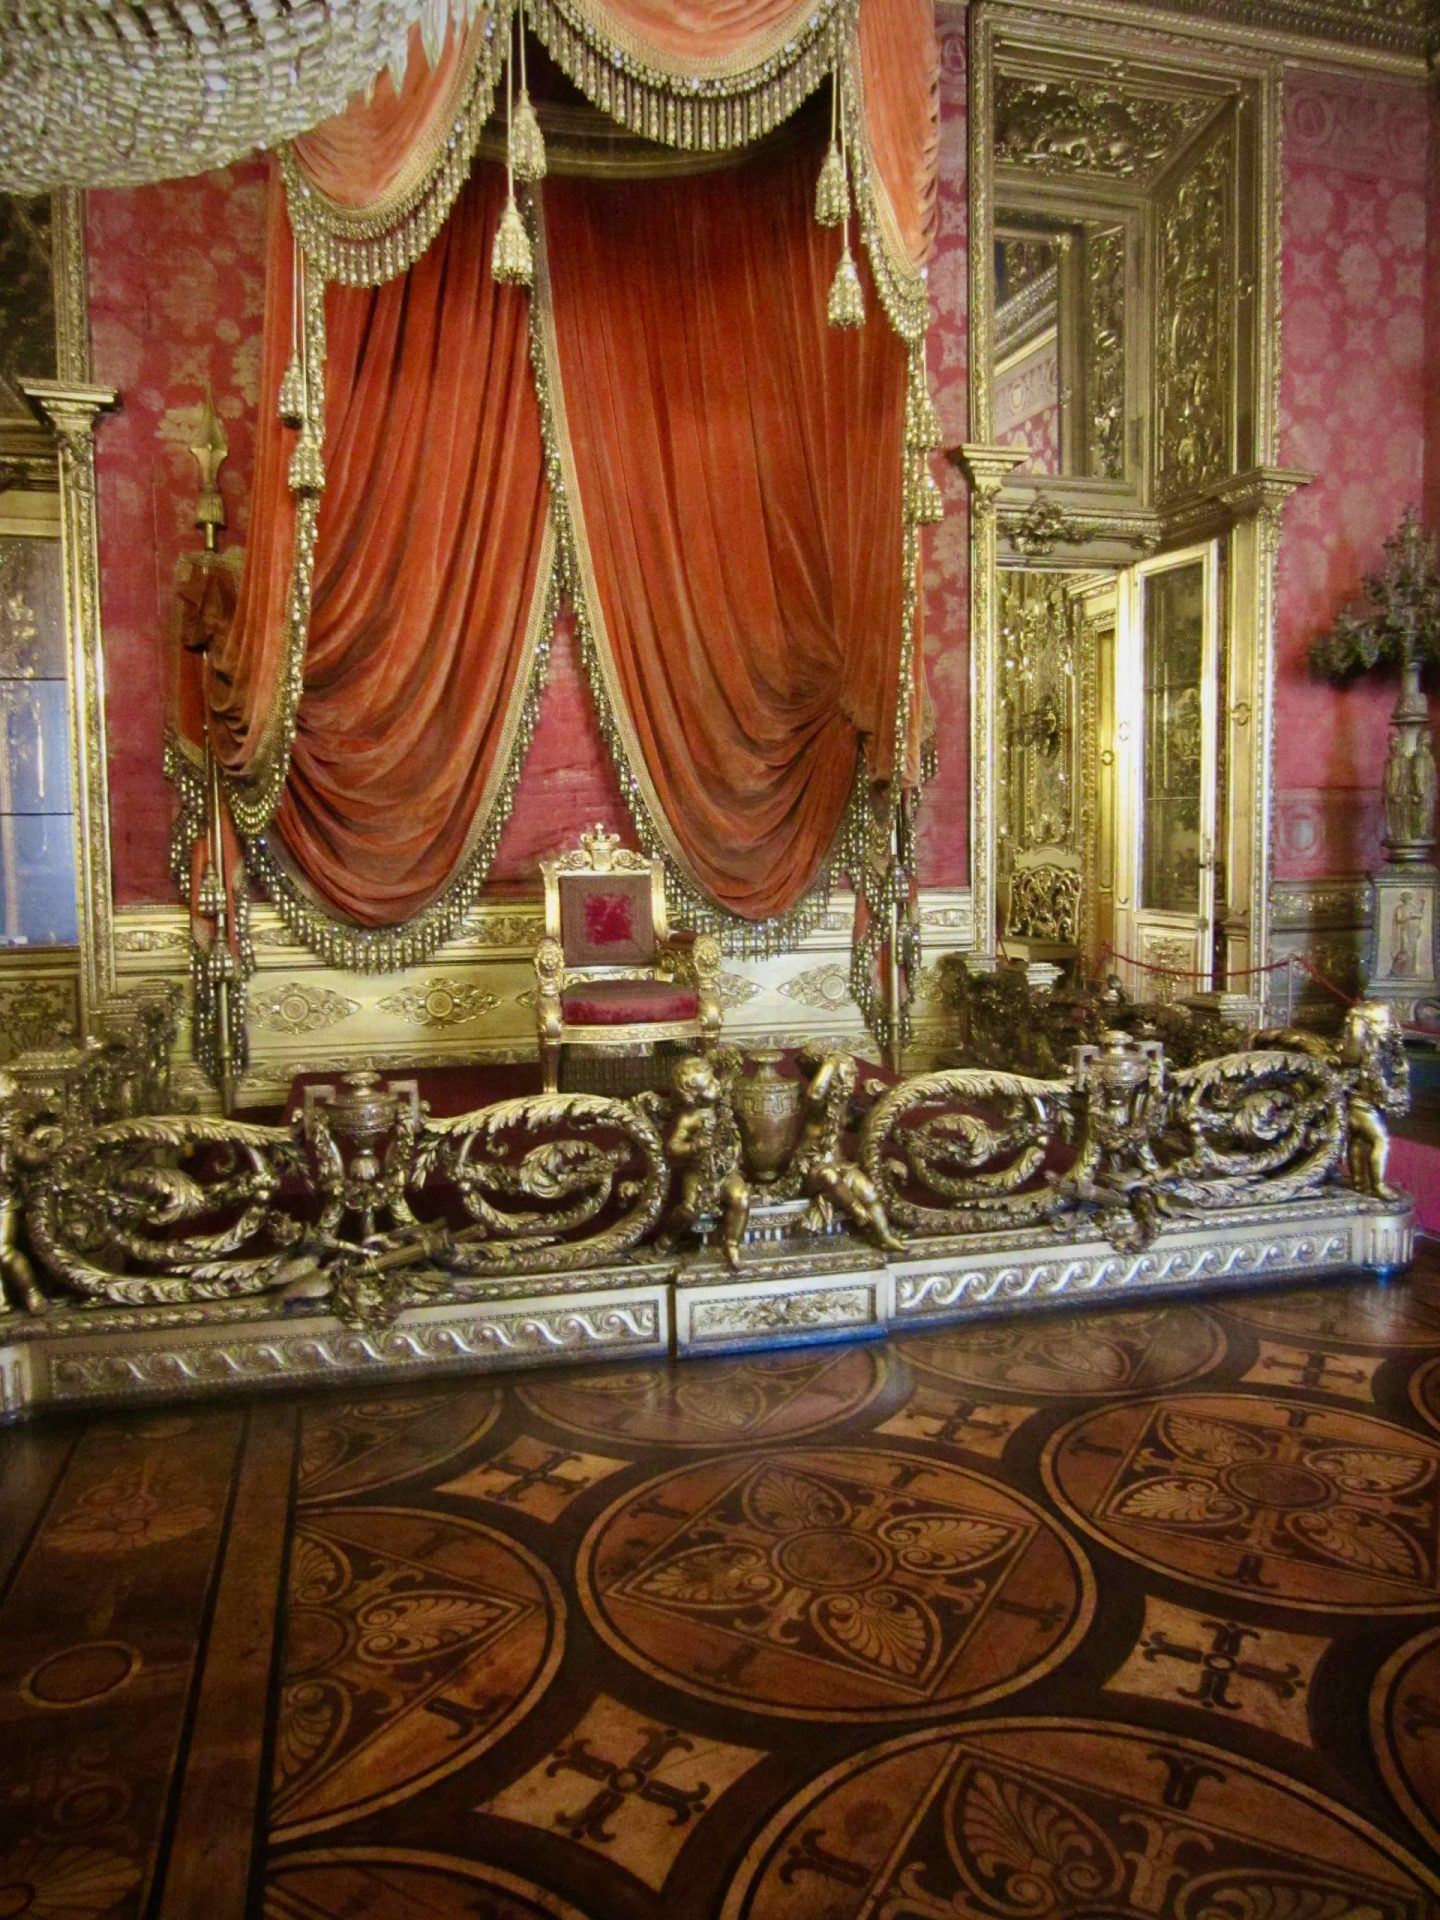 Royal Palace Throne | Torino Italy Travel Guide | The Spectacular Adventurer